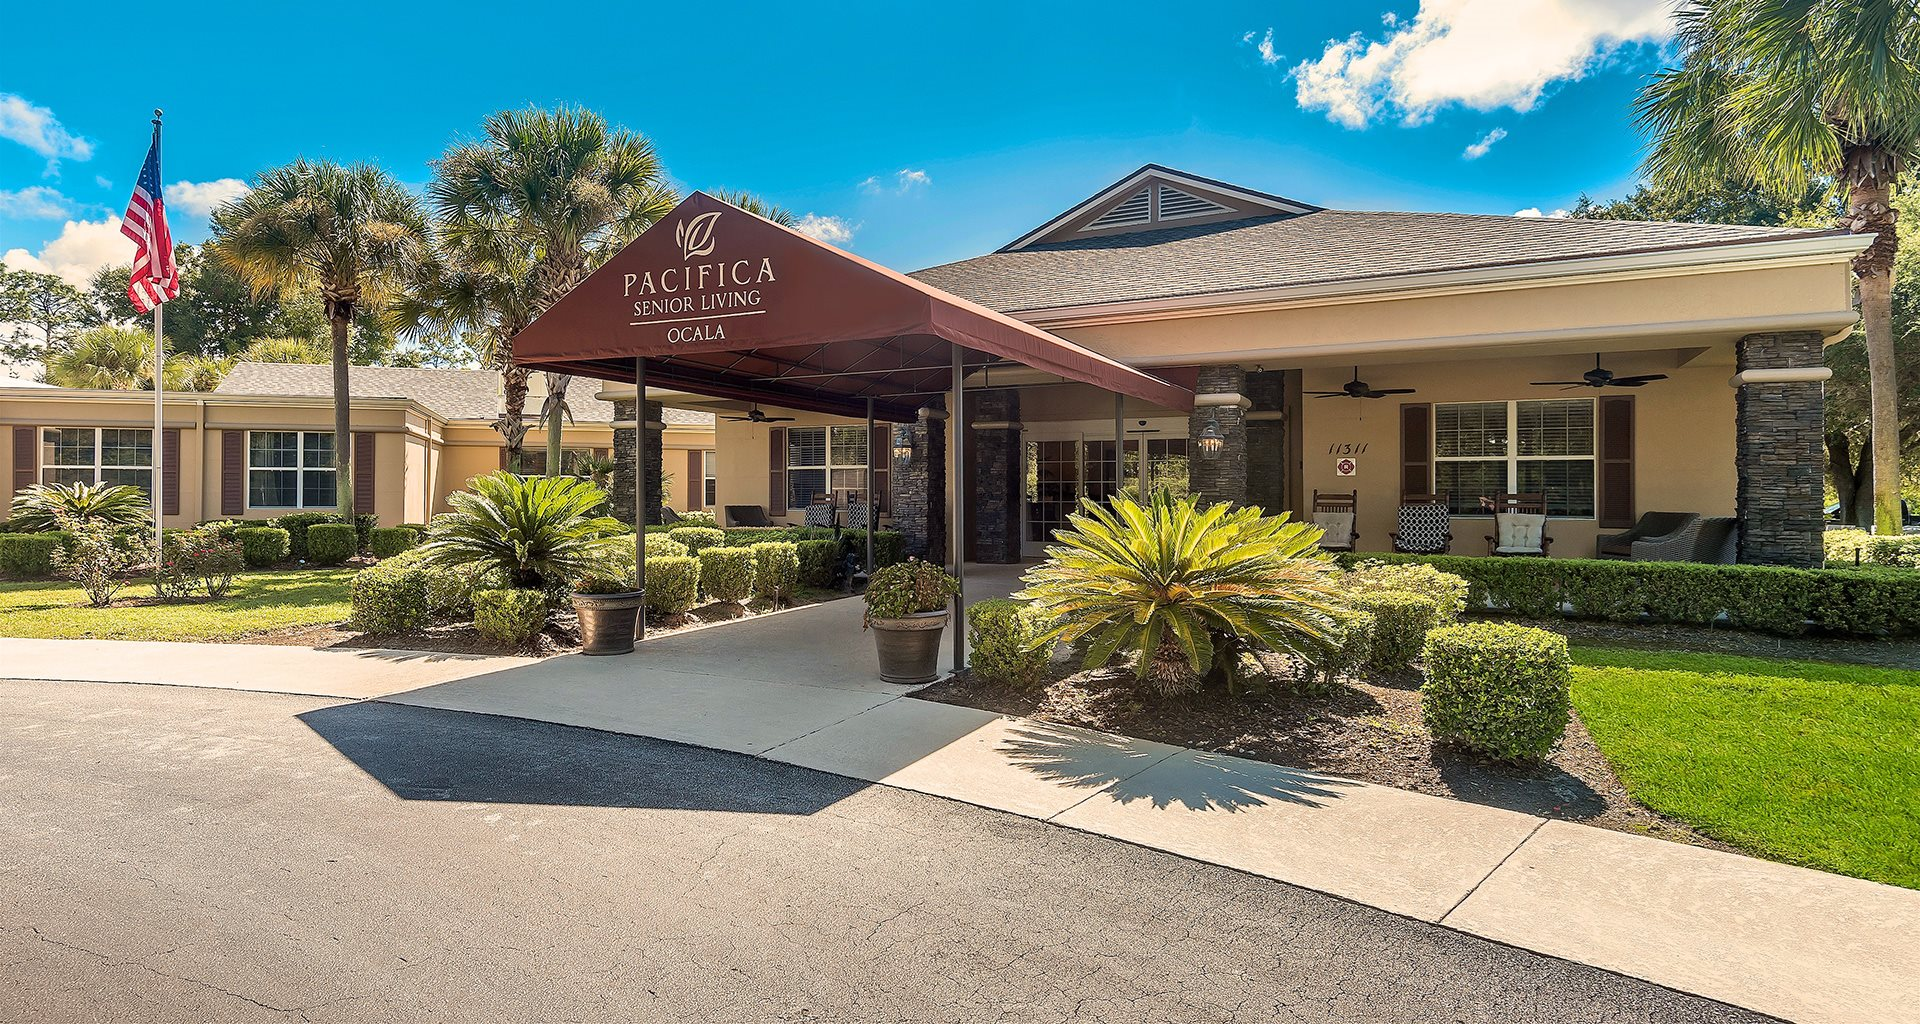 Full Service Beauty and barber salon at Pacifica Senior Living Ocala, Ocala